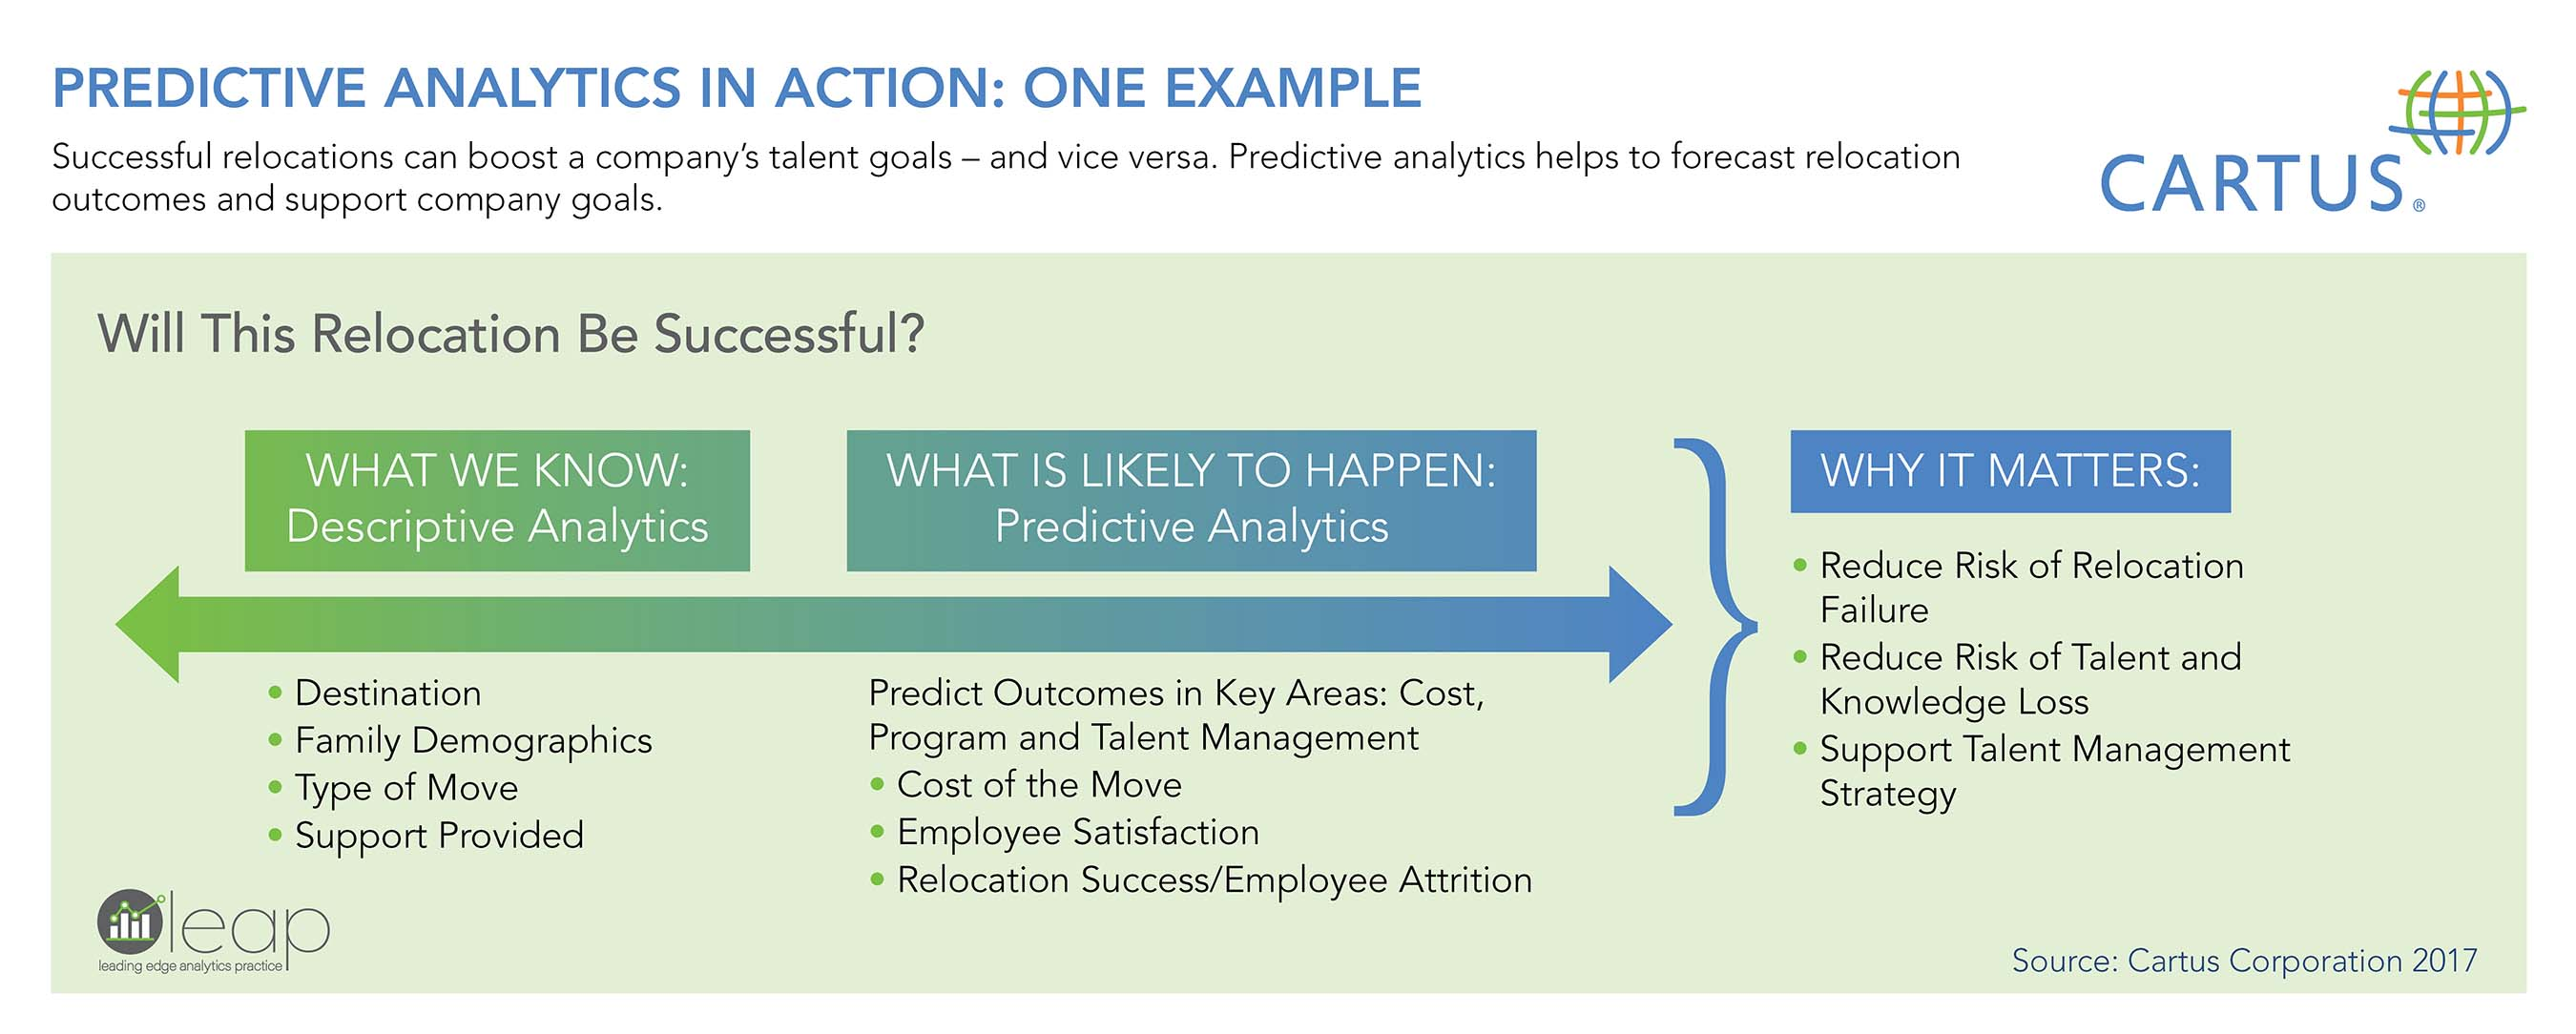 leading edge analytics practice leap